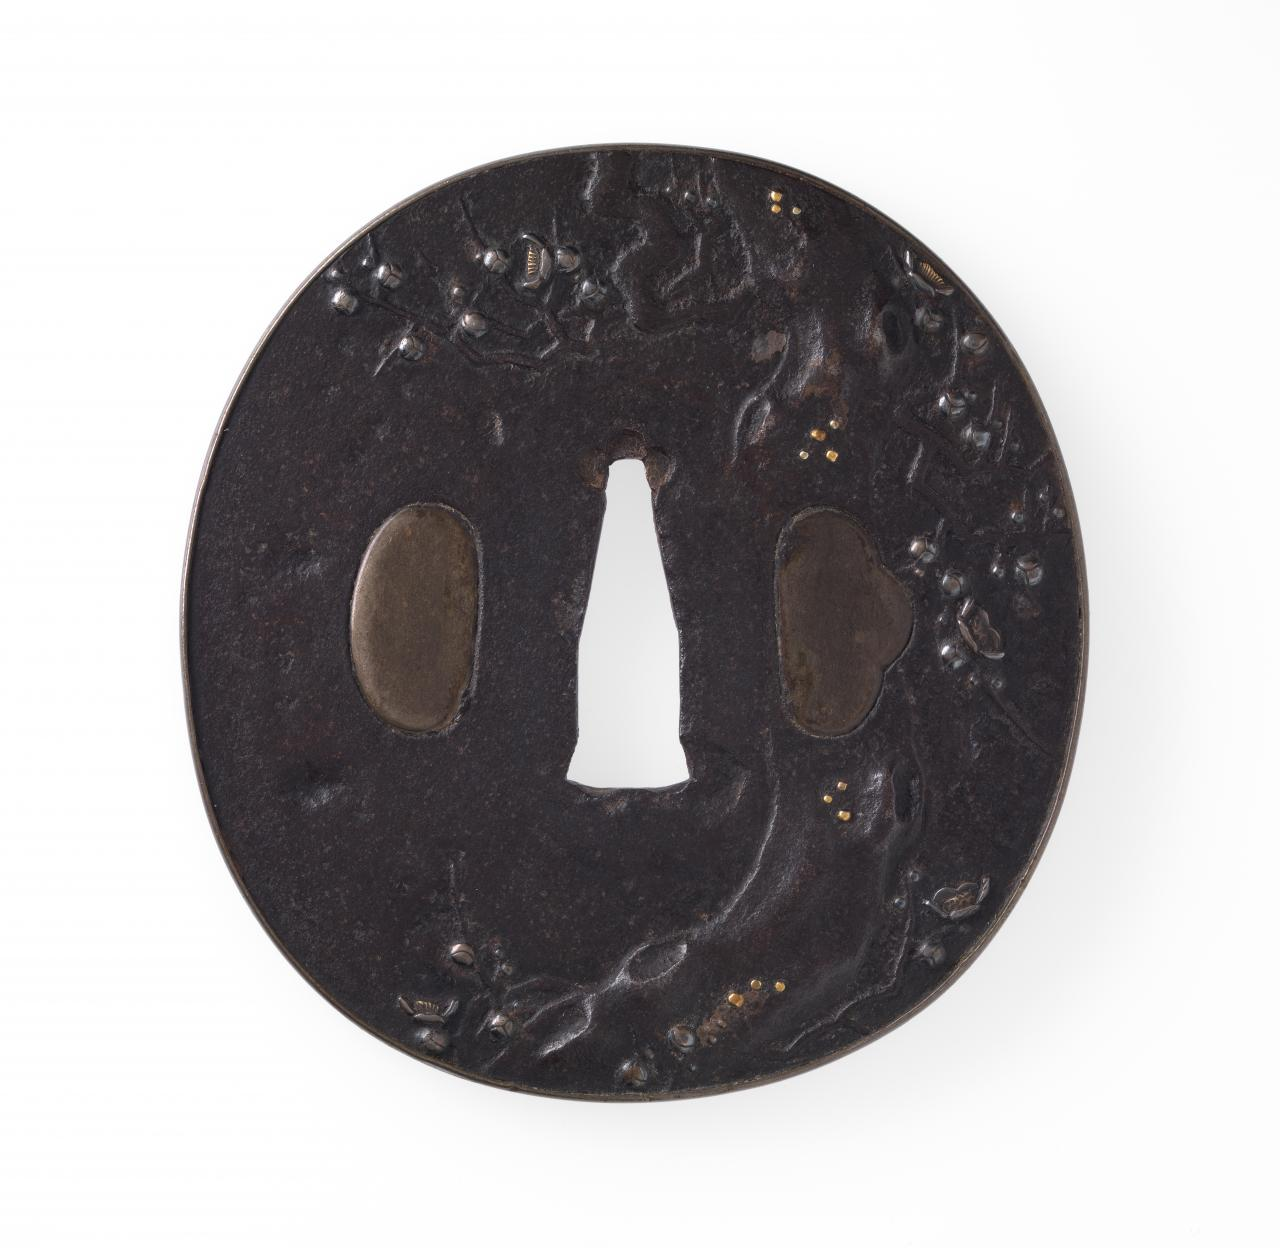 Sword guard with ancient plum tree design